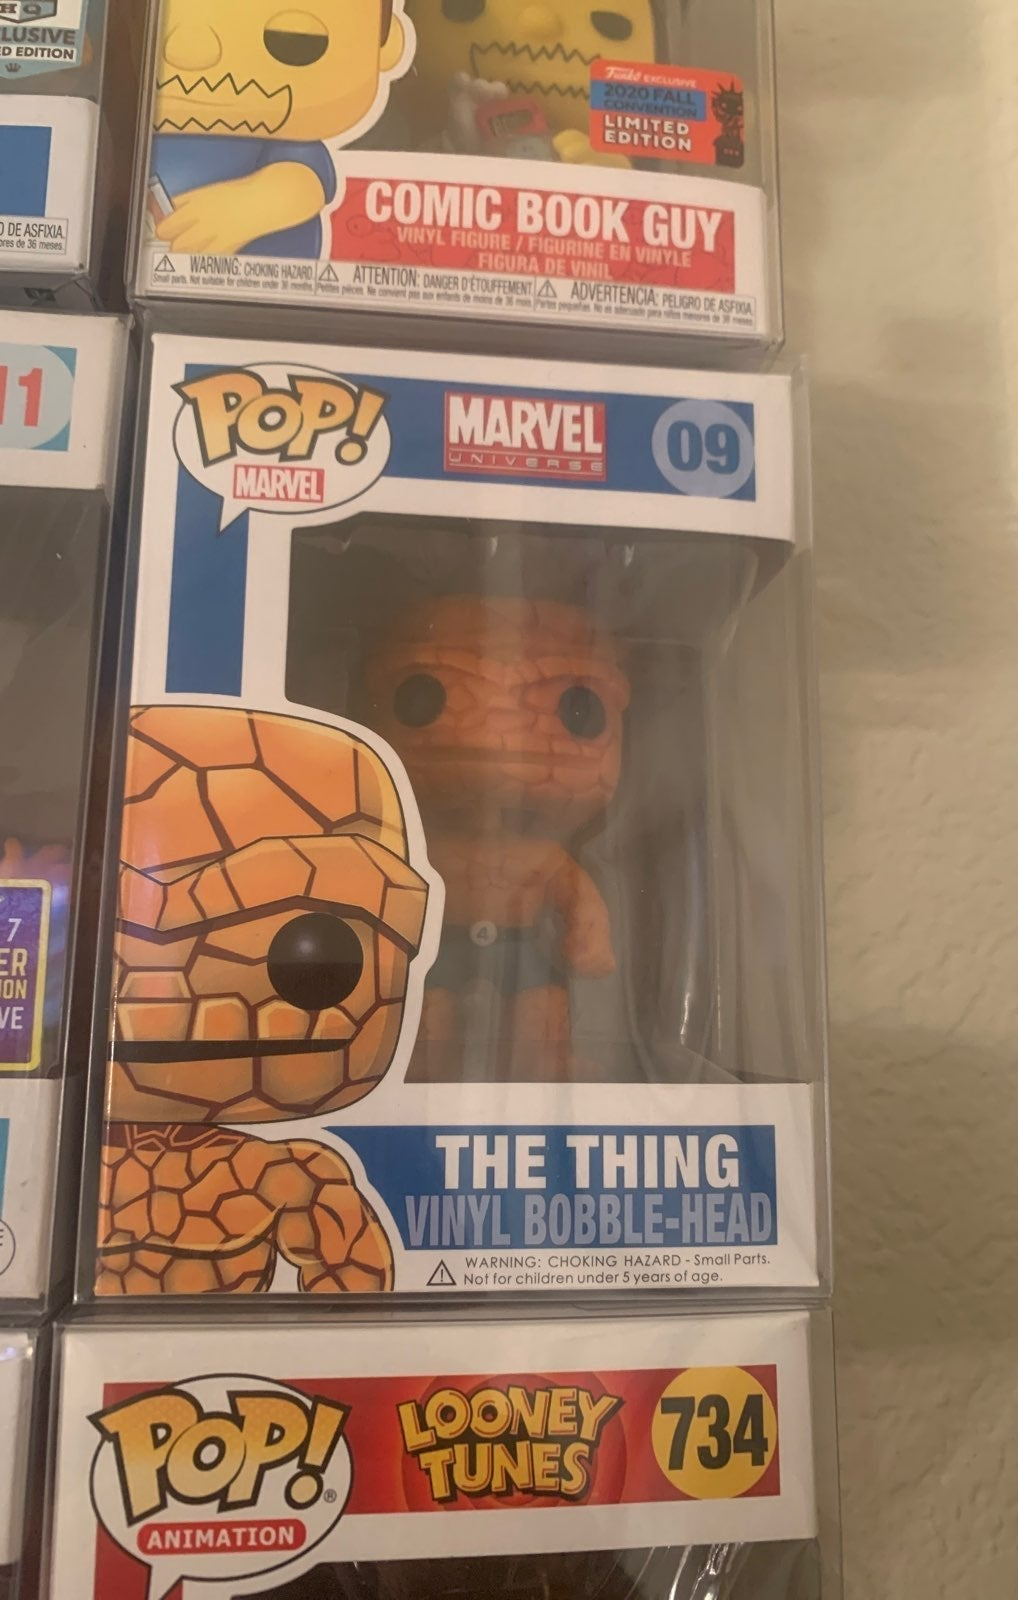 The thing funko pop valuted